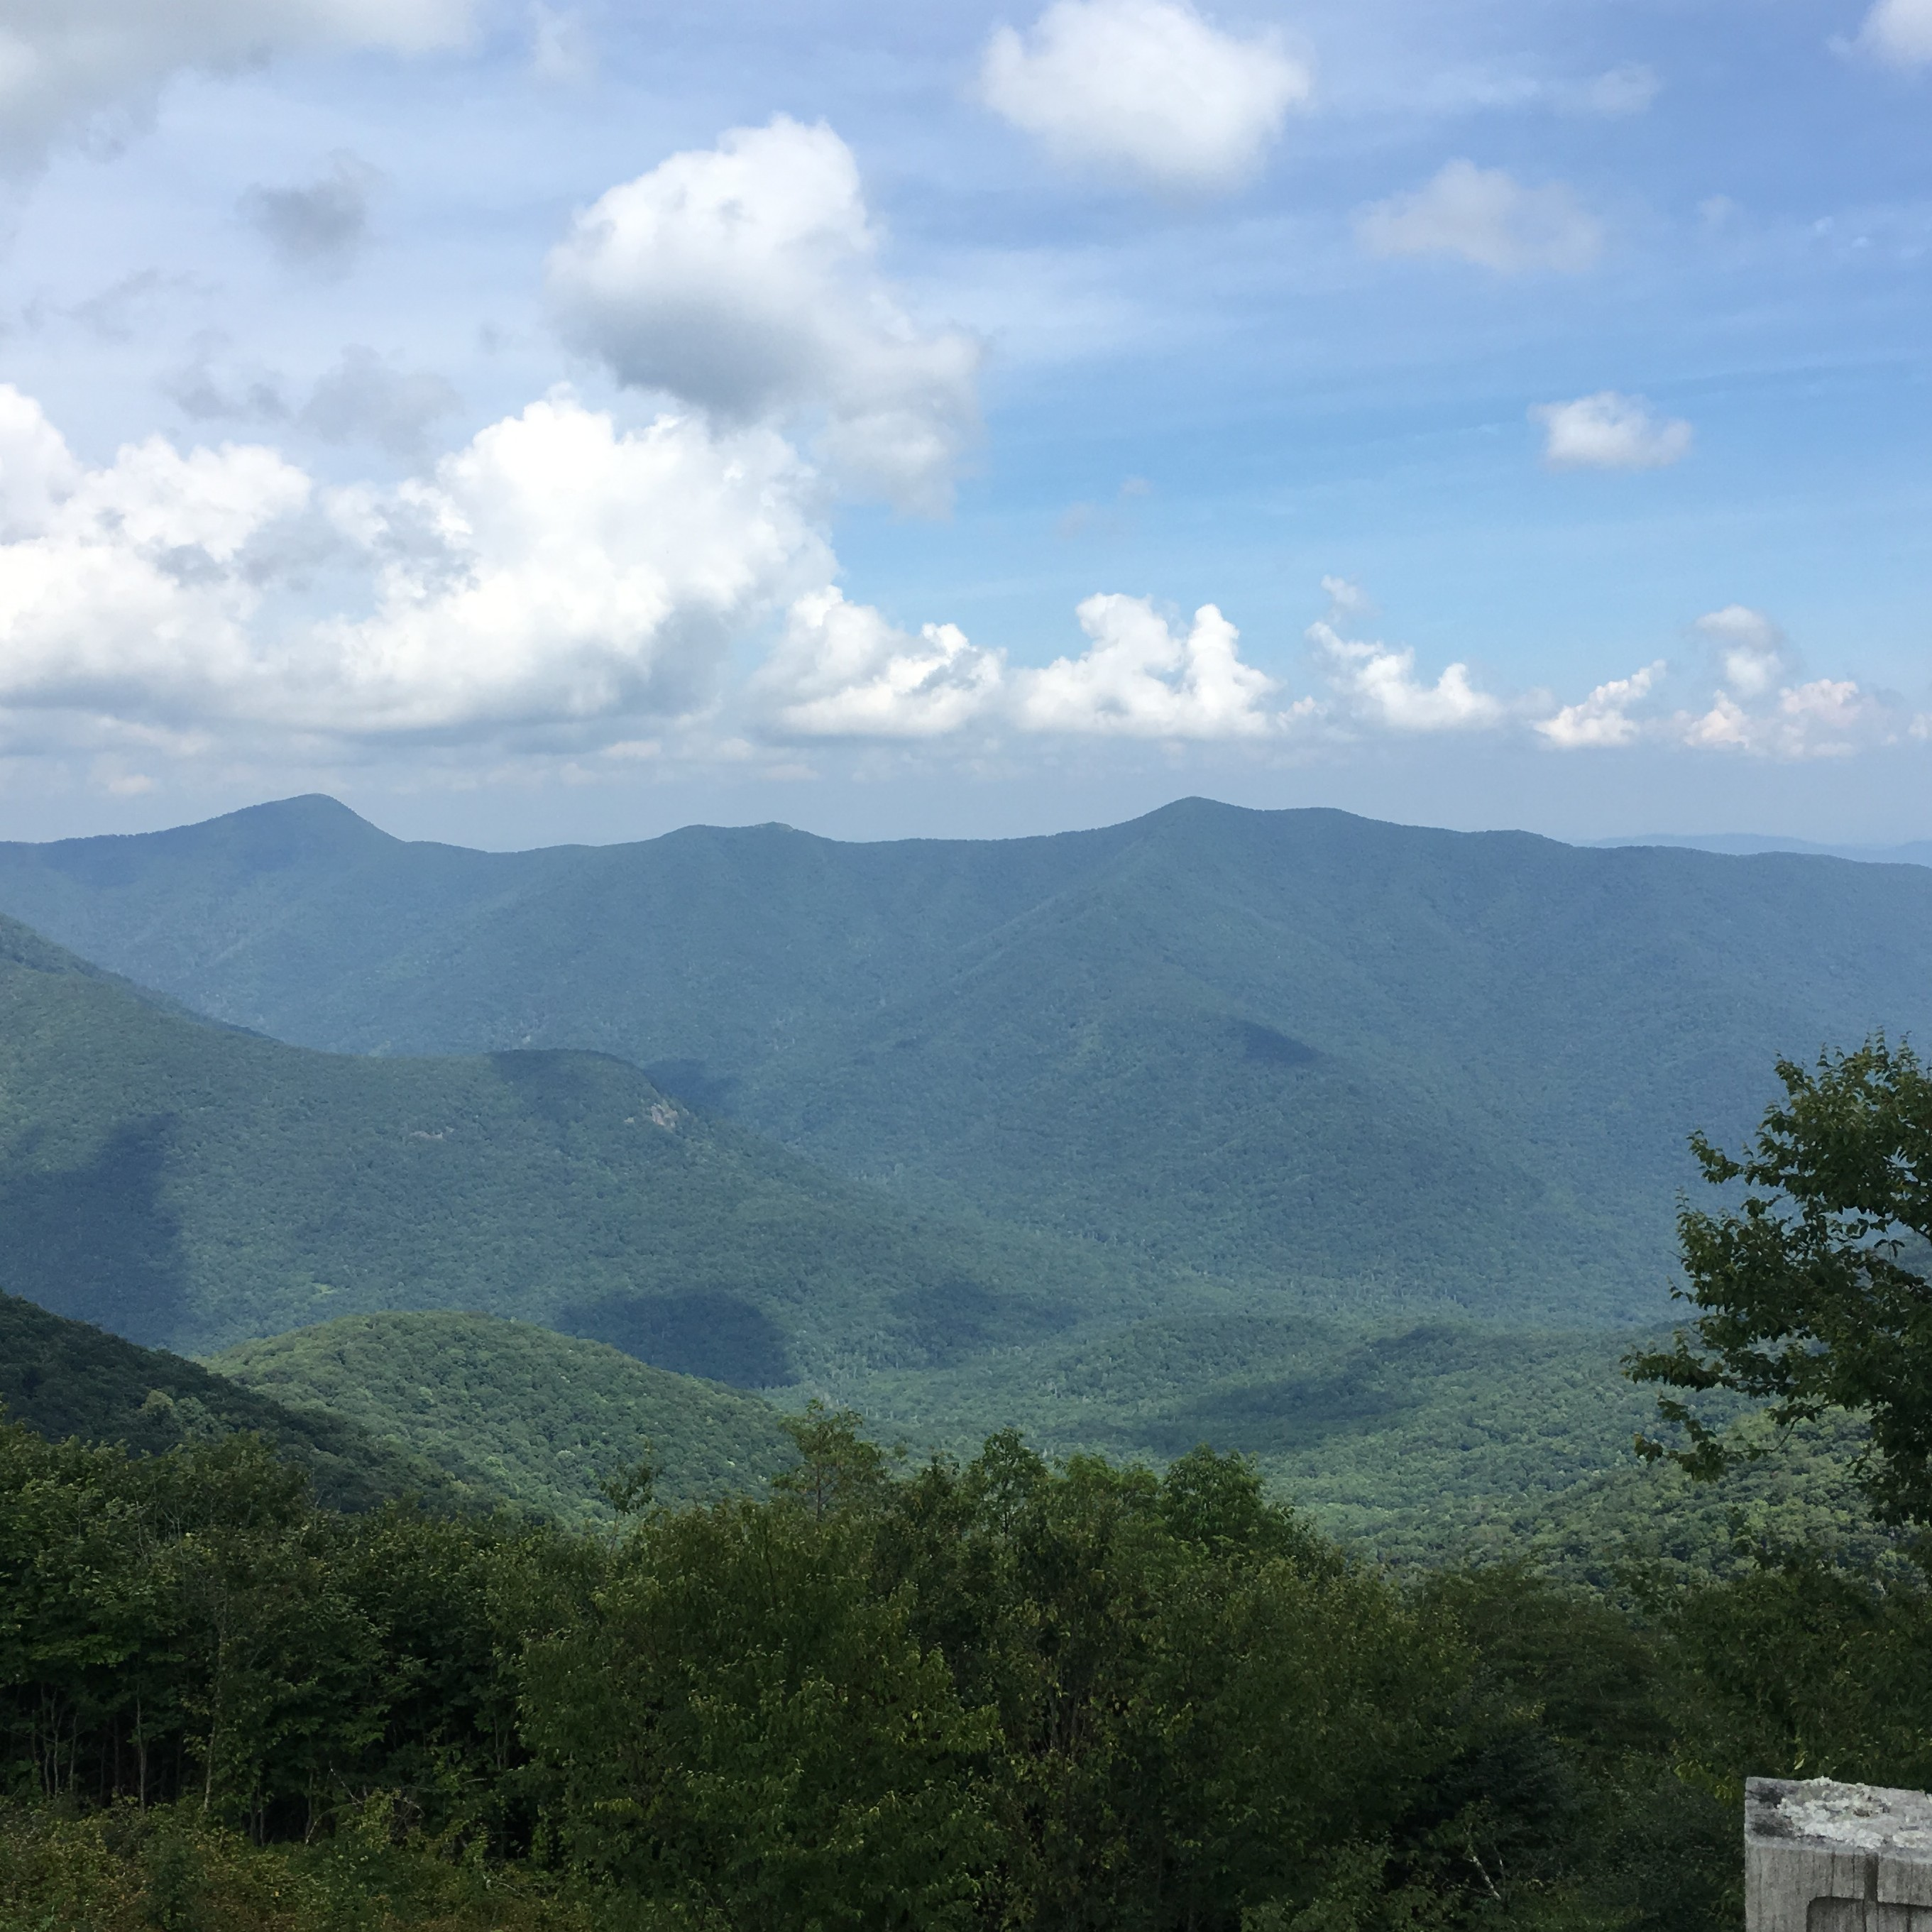 Views of mountains from Mt Mitchell NC